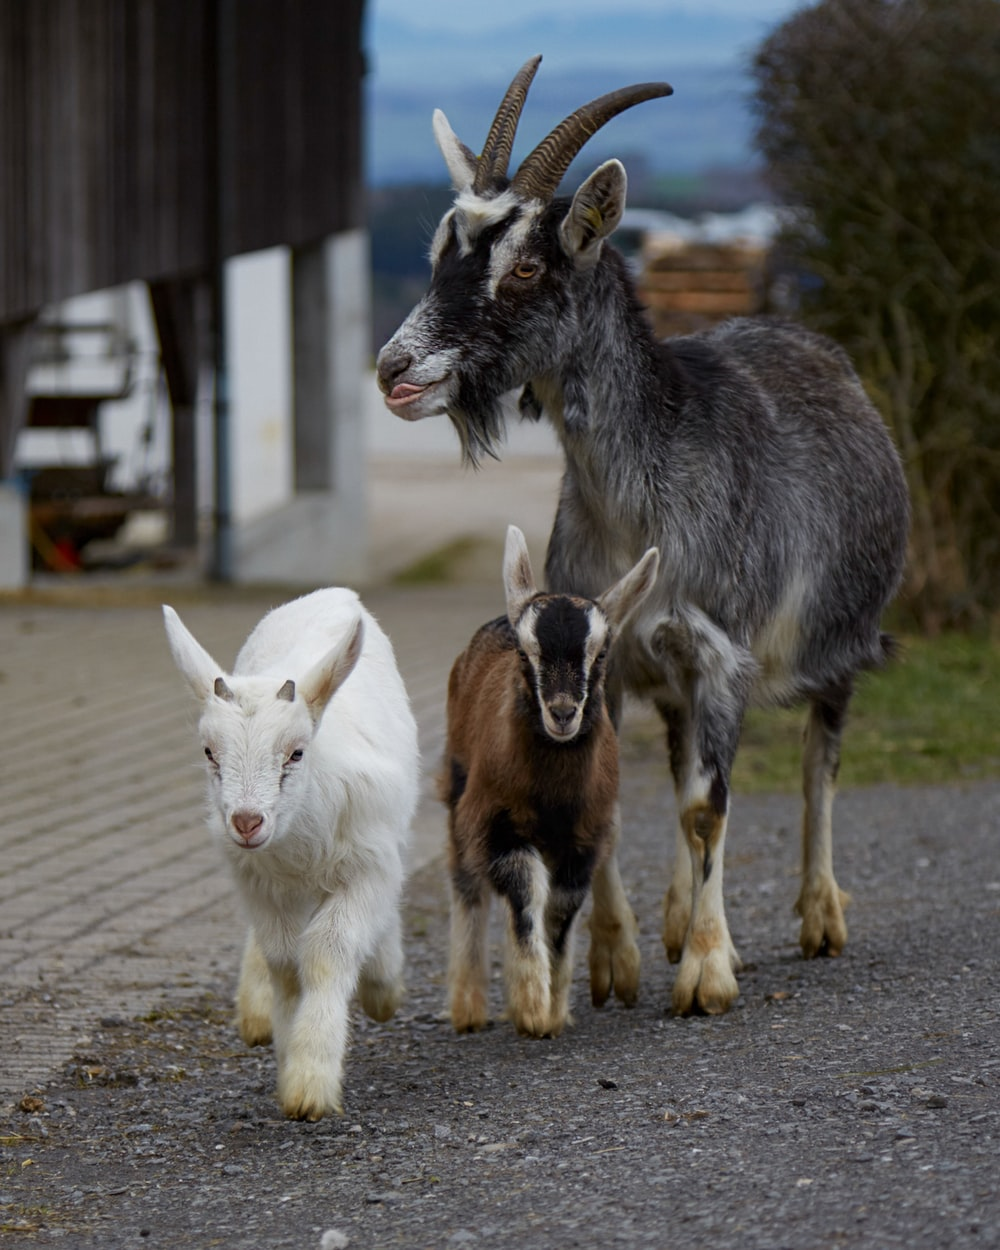 white and brown goats on brown dirt road during daytime